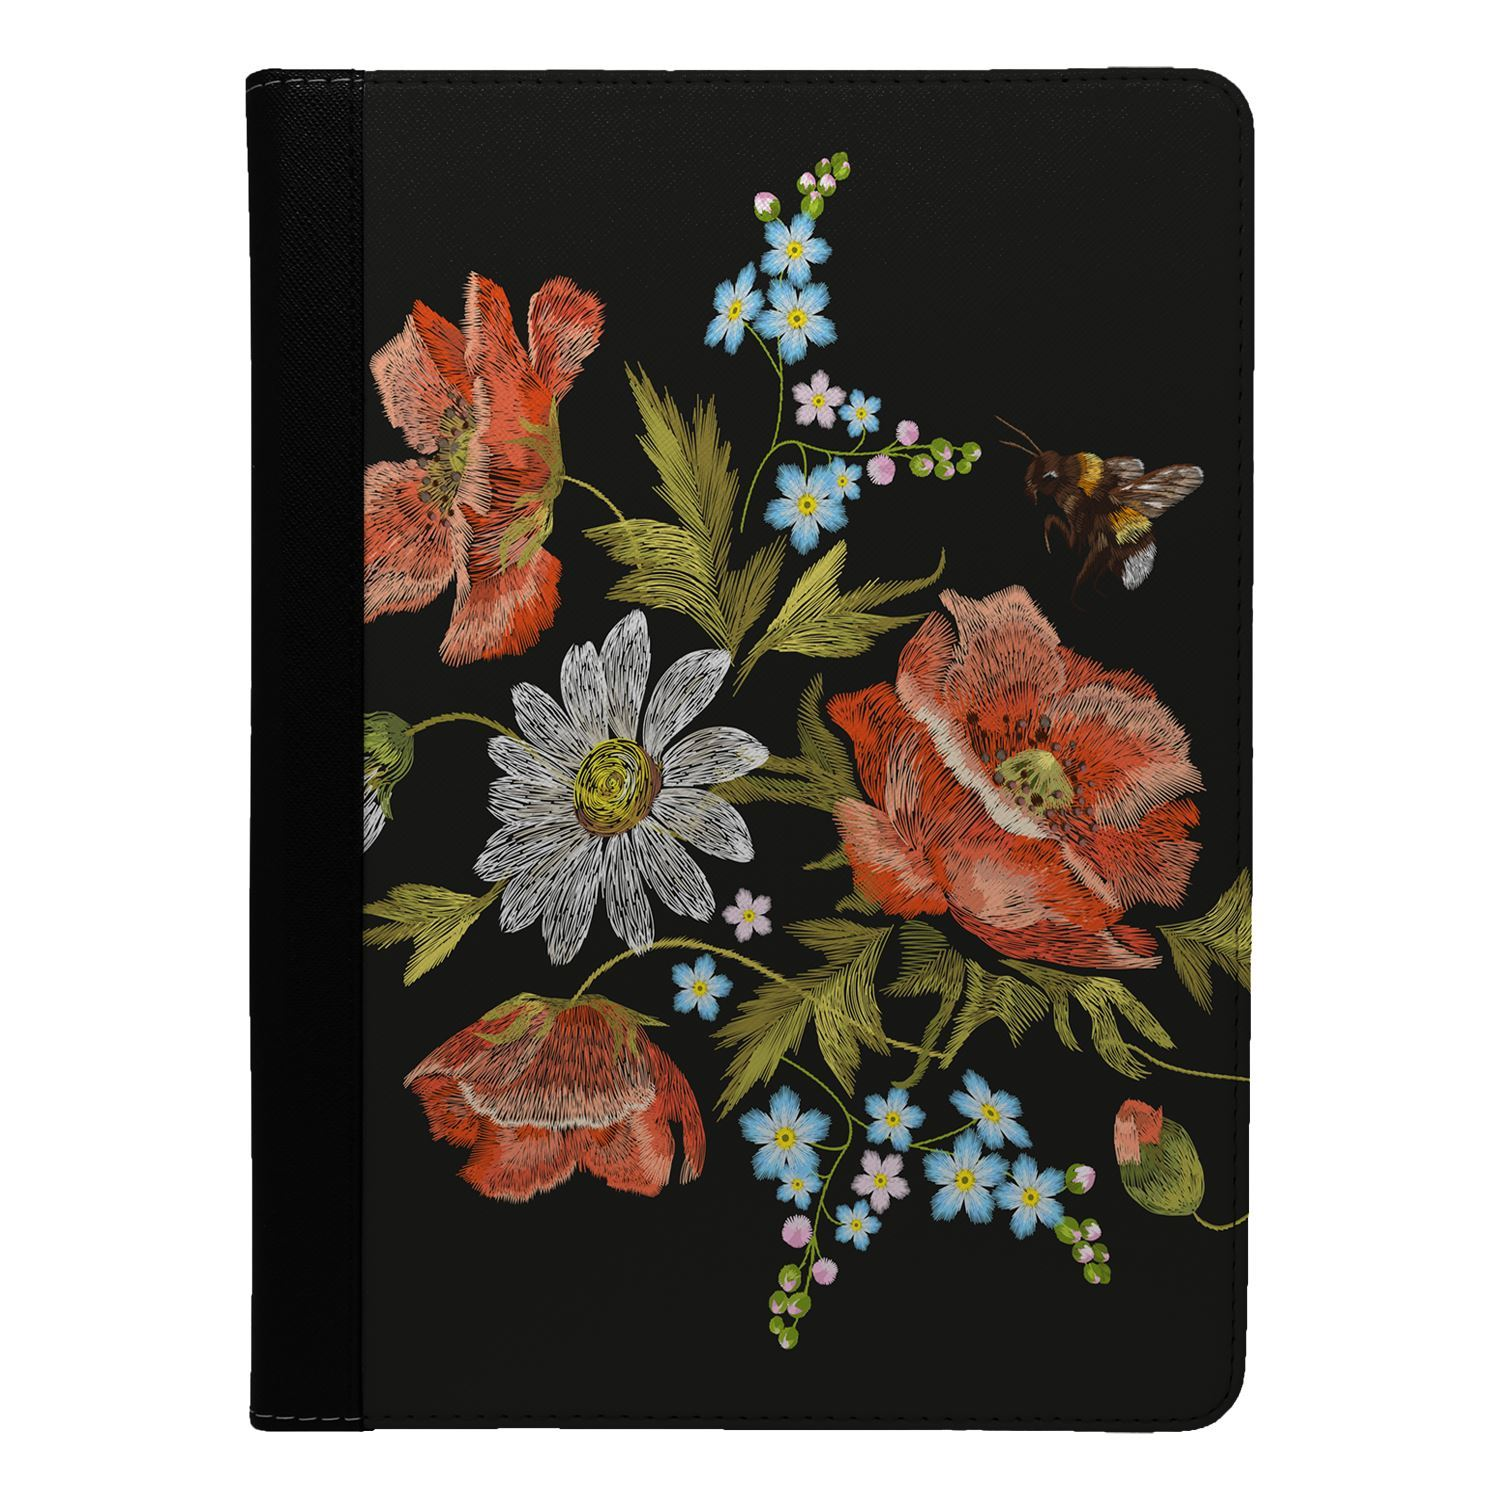 Embroidery-Effect-Flowers-Flip-Case-Cover-For-Apple-iPad-S4500